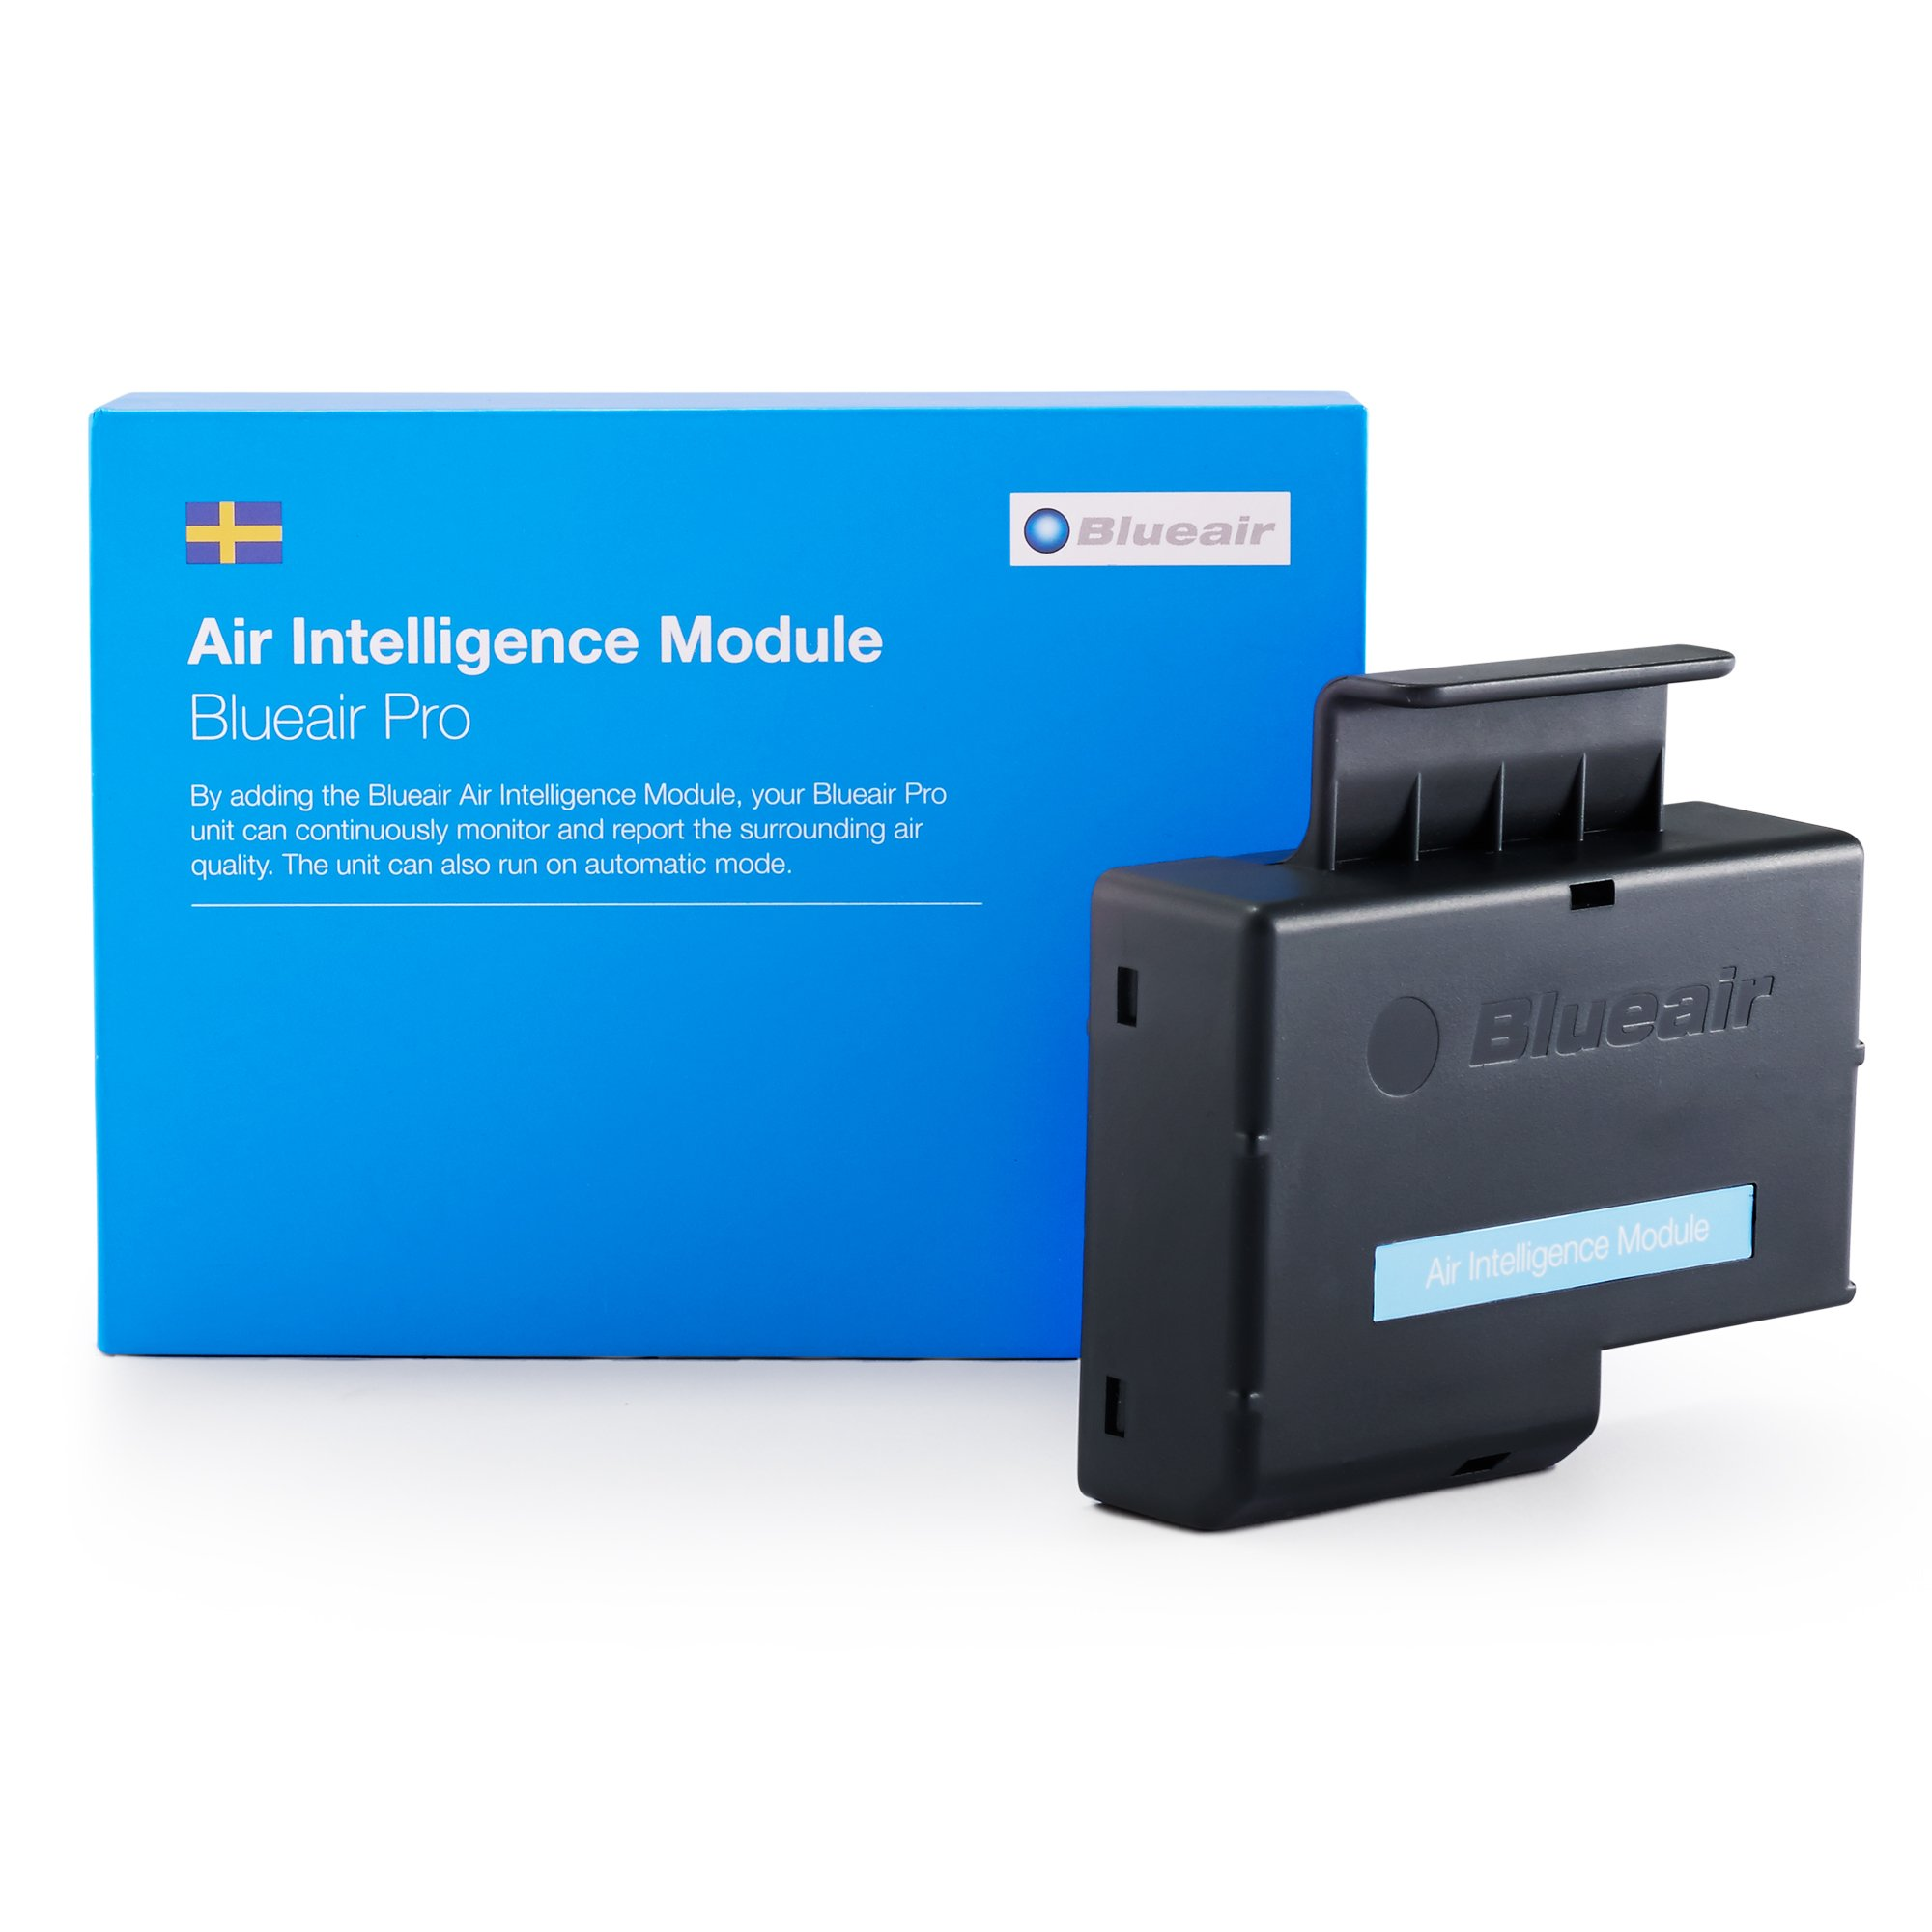 Blueair Pro AIM, Air Intelligence Module, Air Quality Sensor Compatible with Blueair Pro M, Pro L and Pro XL Air Purifiers